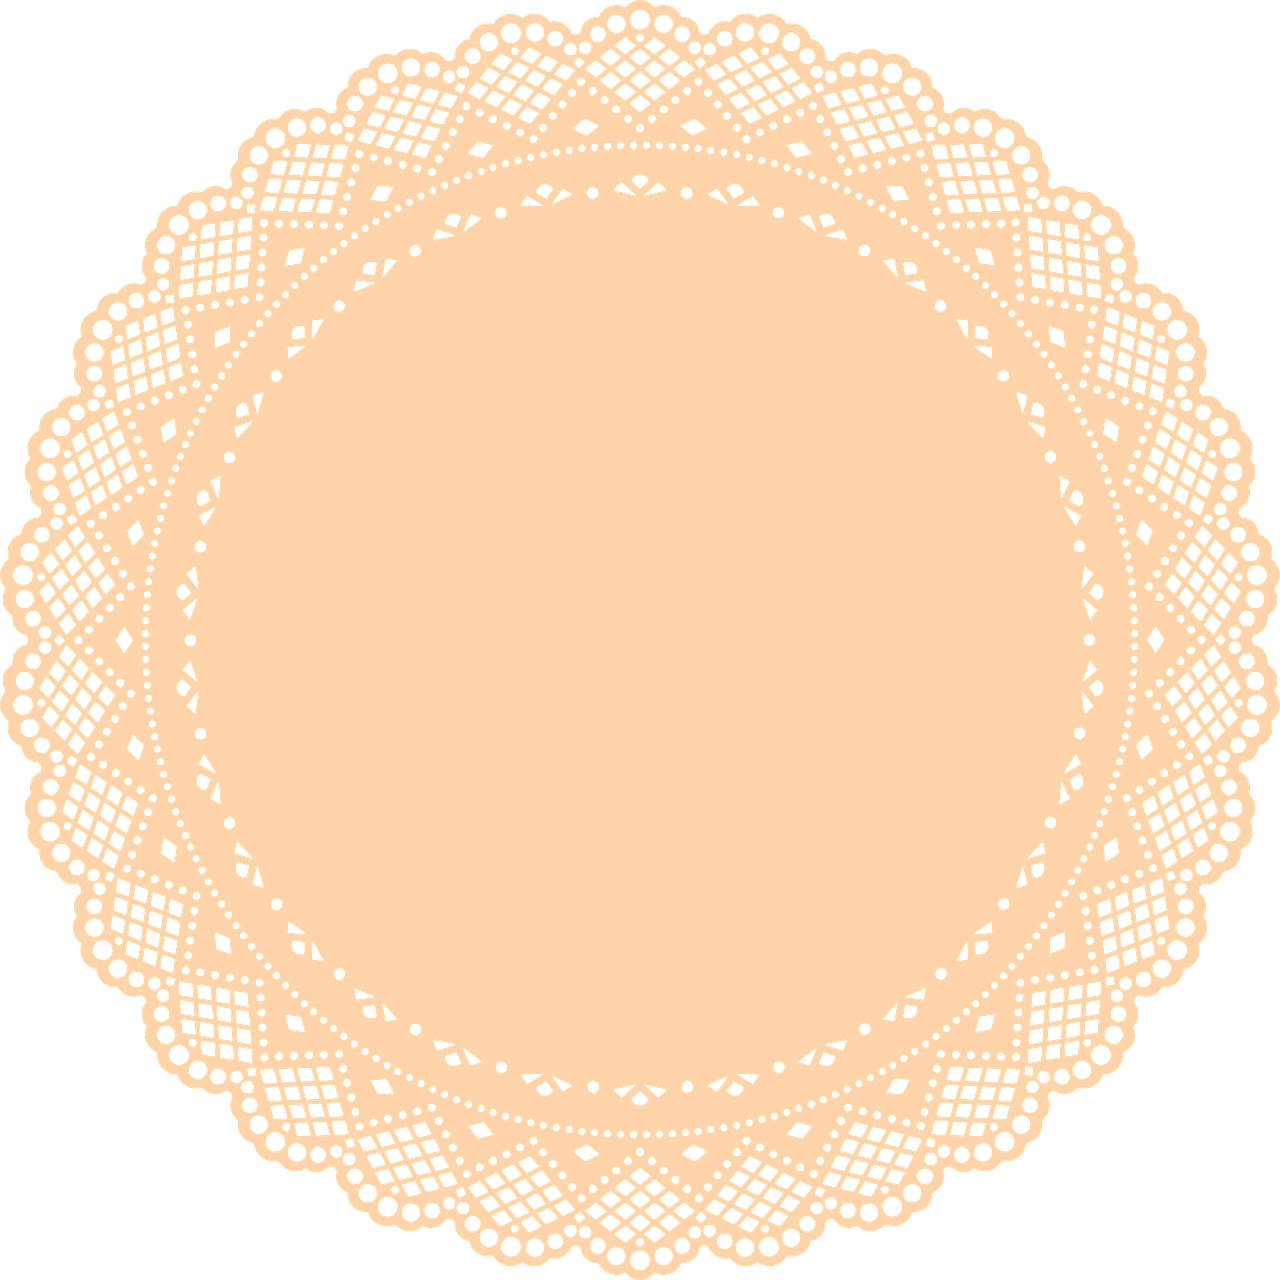 Gold clipart doily. Free image on pixabay